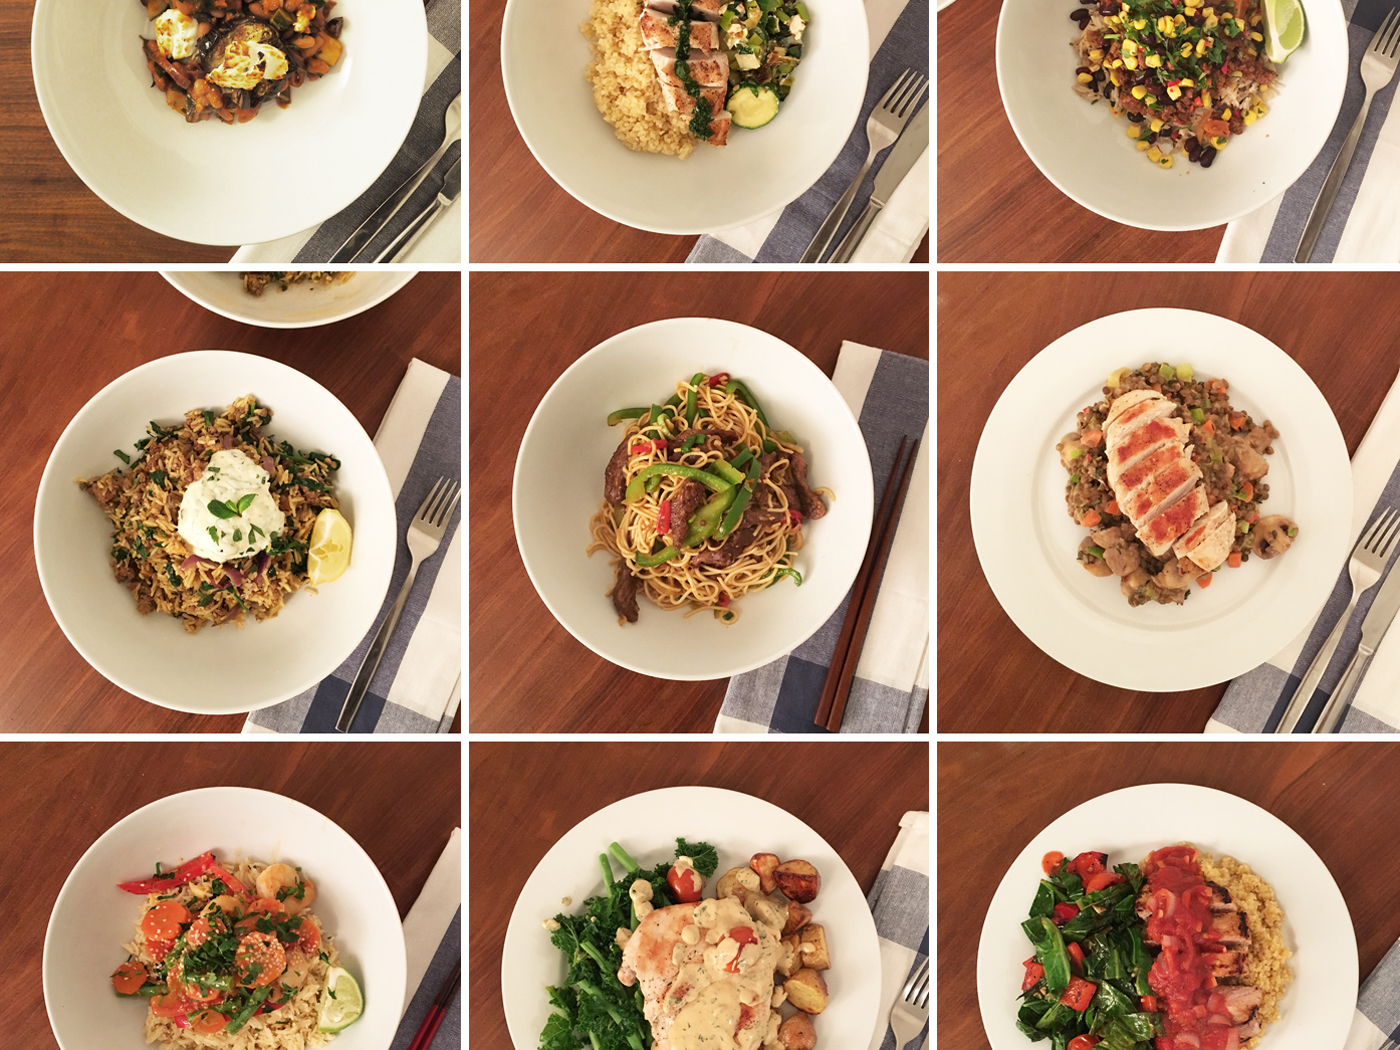 Meal Kit Delivery Service Hellofresh Store Availability